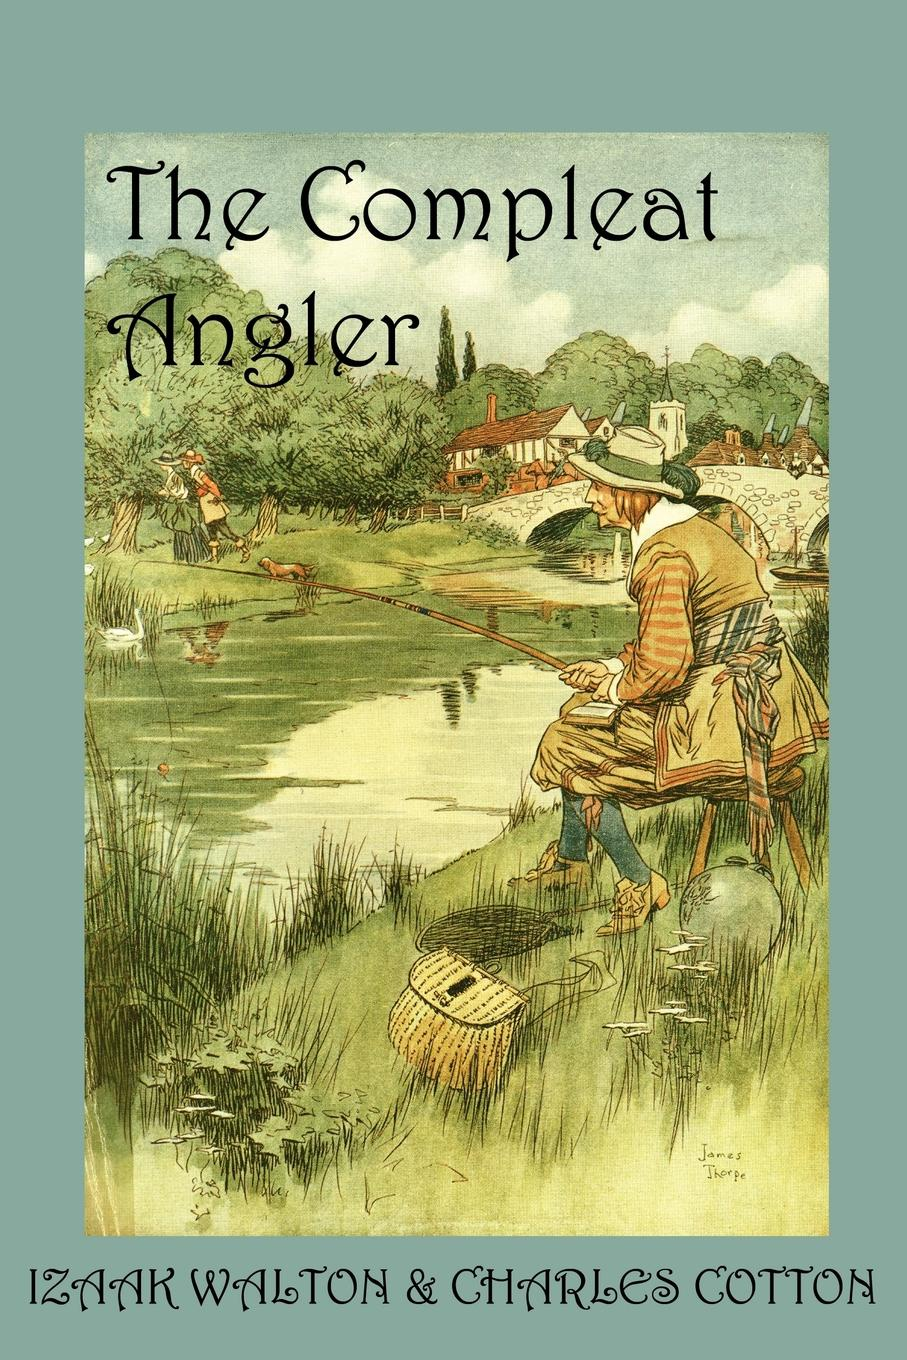 Charles Cotton, Izaak Walton The Compleat Angler, or the Contemplative Man's Recreation walton izaak the compleat angler or the contemplative man s recreation being a